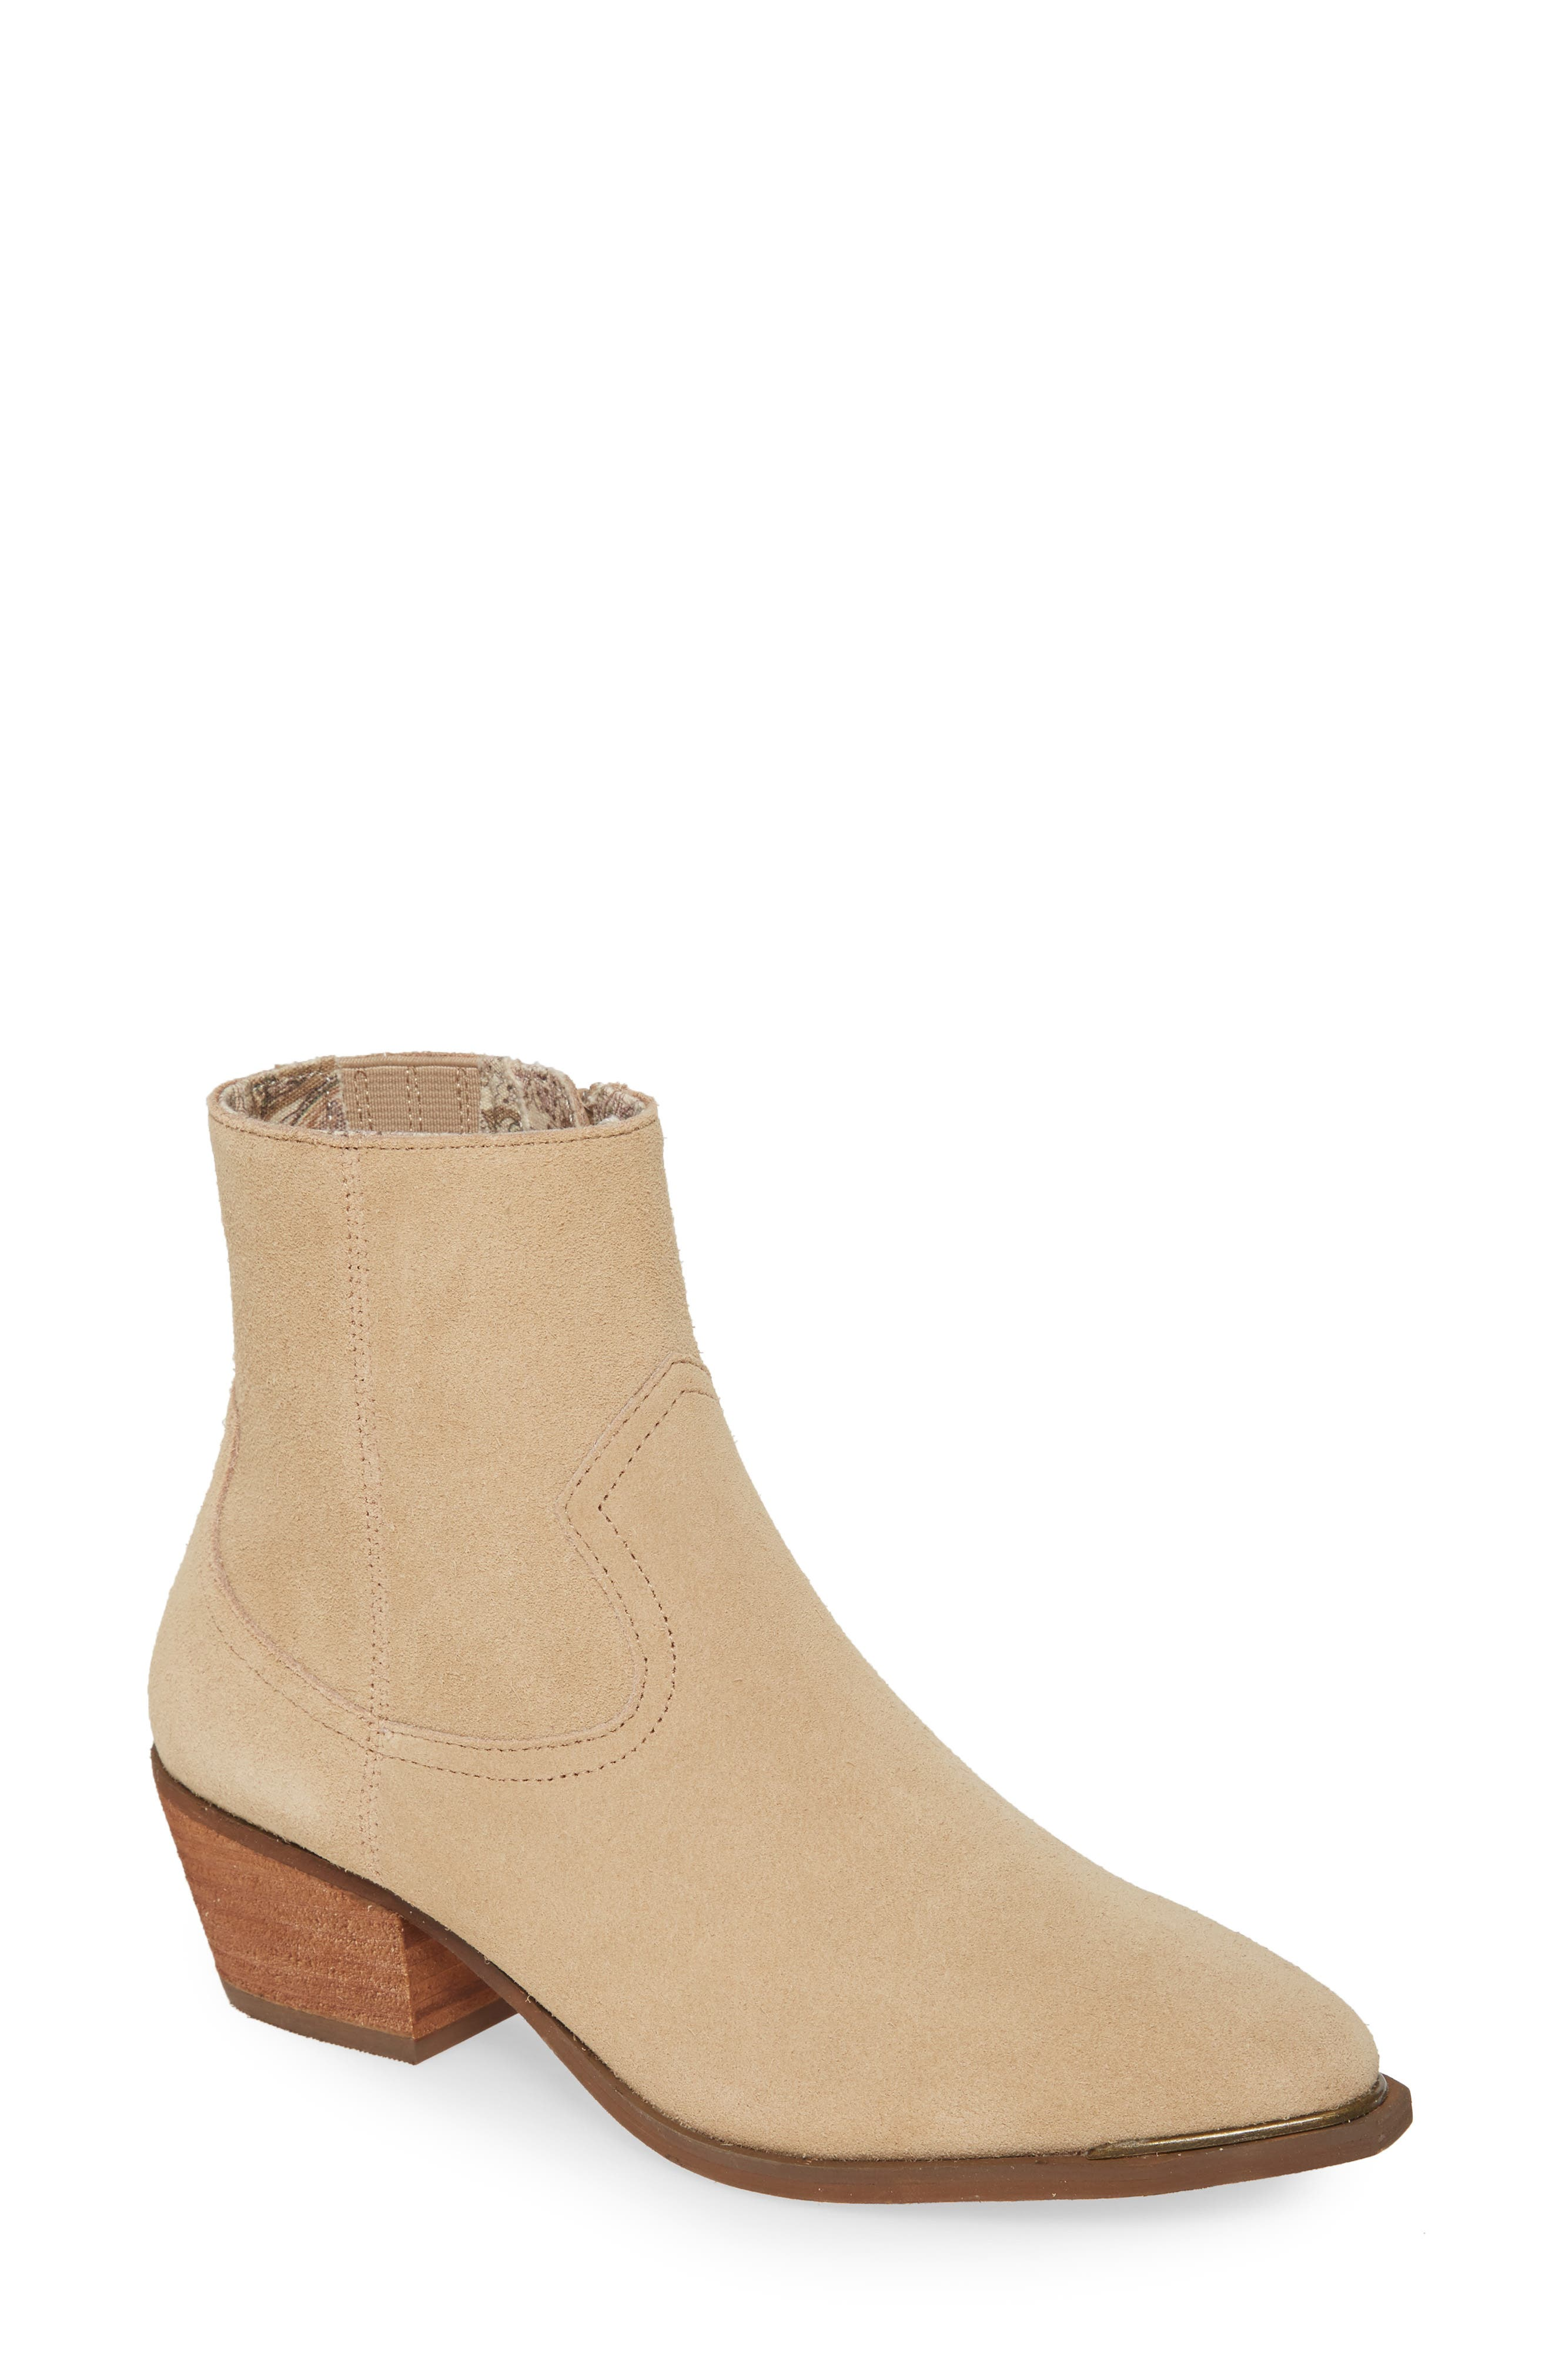 An antique-finish rand at the toe adds subtle embellishment to a minimalist Western-inspired bootie styled with concealed goring in the shaft for an easy fit. Style Name: Band Of Gypsies Creed Bootie (Women). Style Number: 5894642. Available in stores.